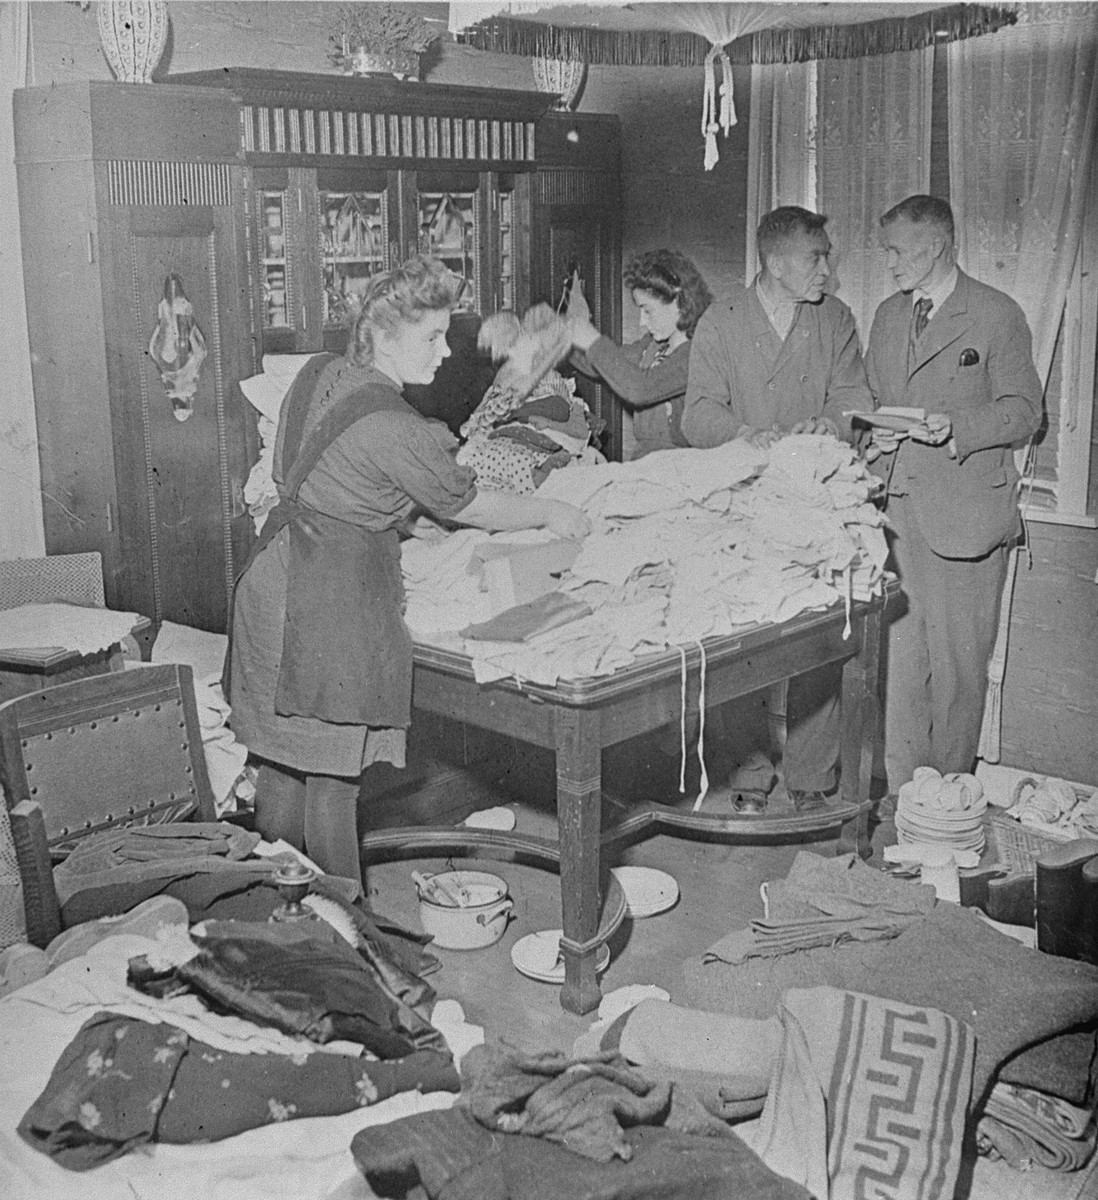 Ilse Kohra(L), the daughter of the Burgermeister of the German town of Belsen, along with Herr Pfeifer(R) and his daughter Anna, sorting clothing for Bergen-Belsen survivors in the Burgermeister's house.